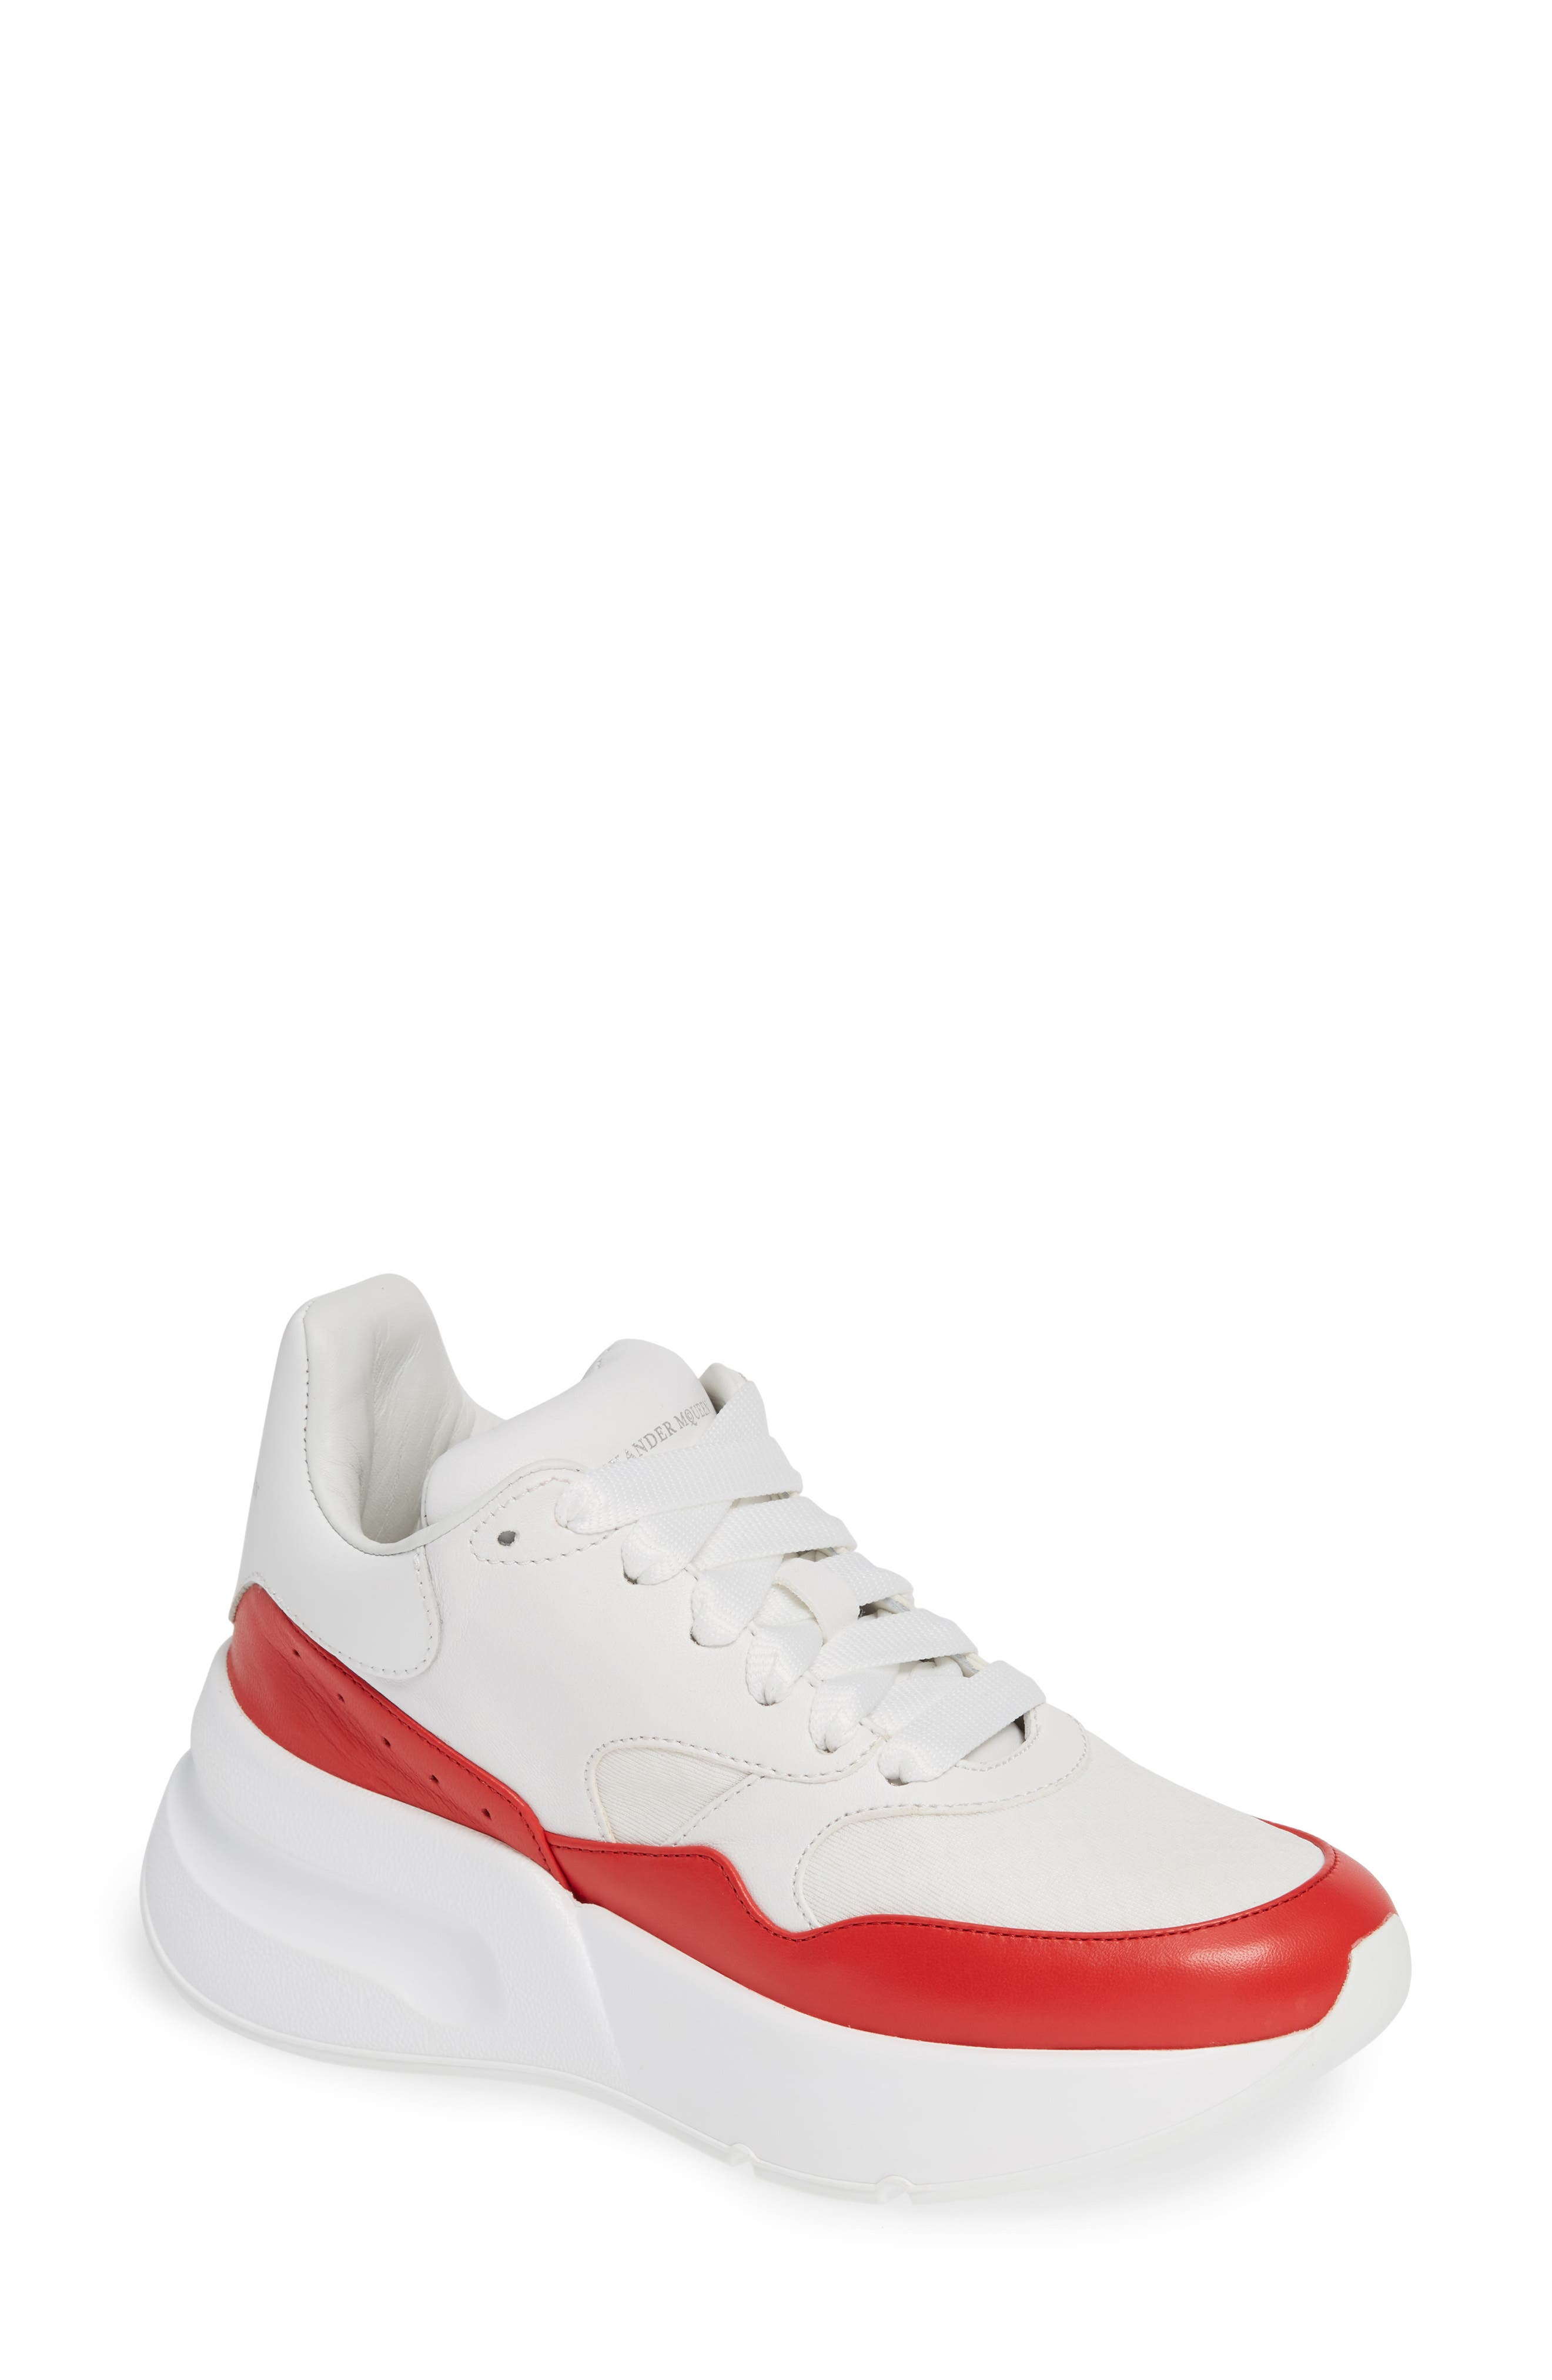 Alexander Mcqueen Oversized Lace-Up Sneaker - White